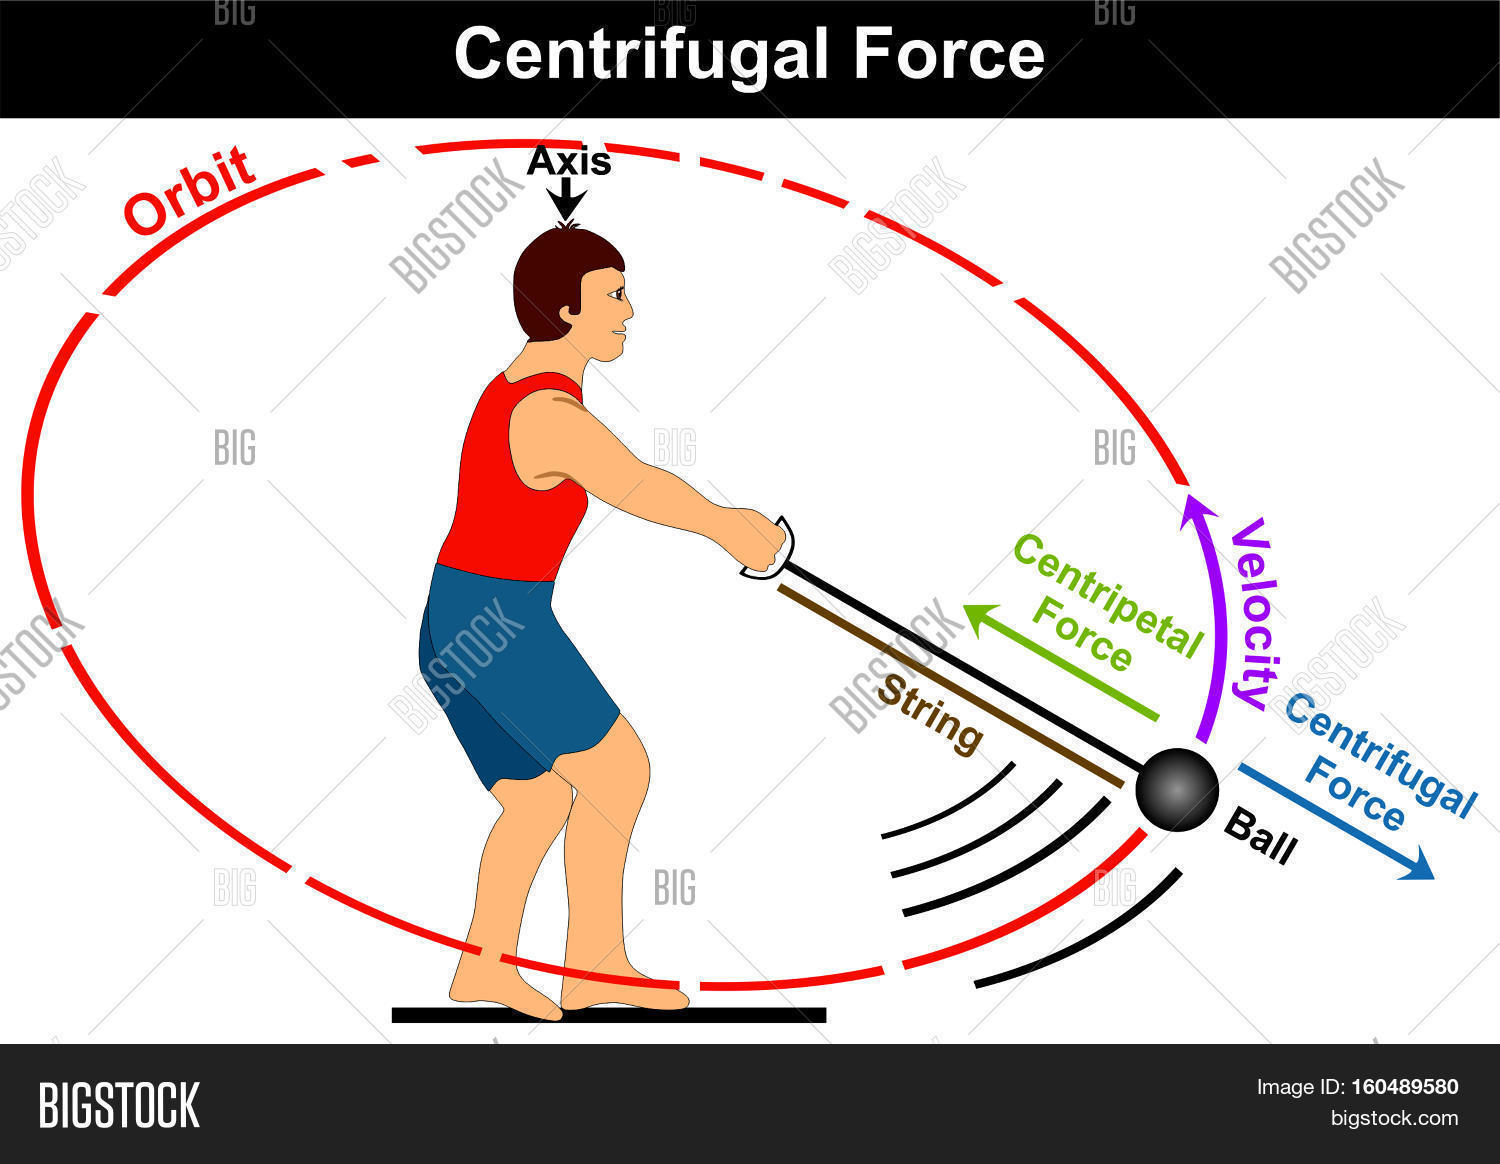 Centrifugal Force Diagram Simple Image Amp Photo